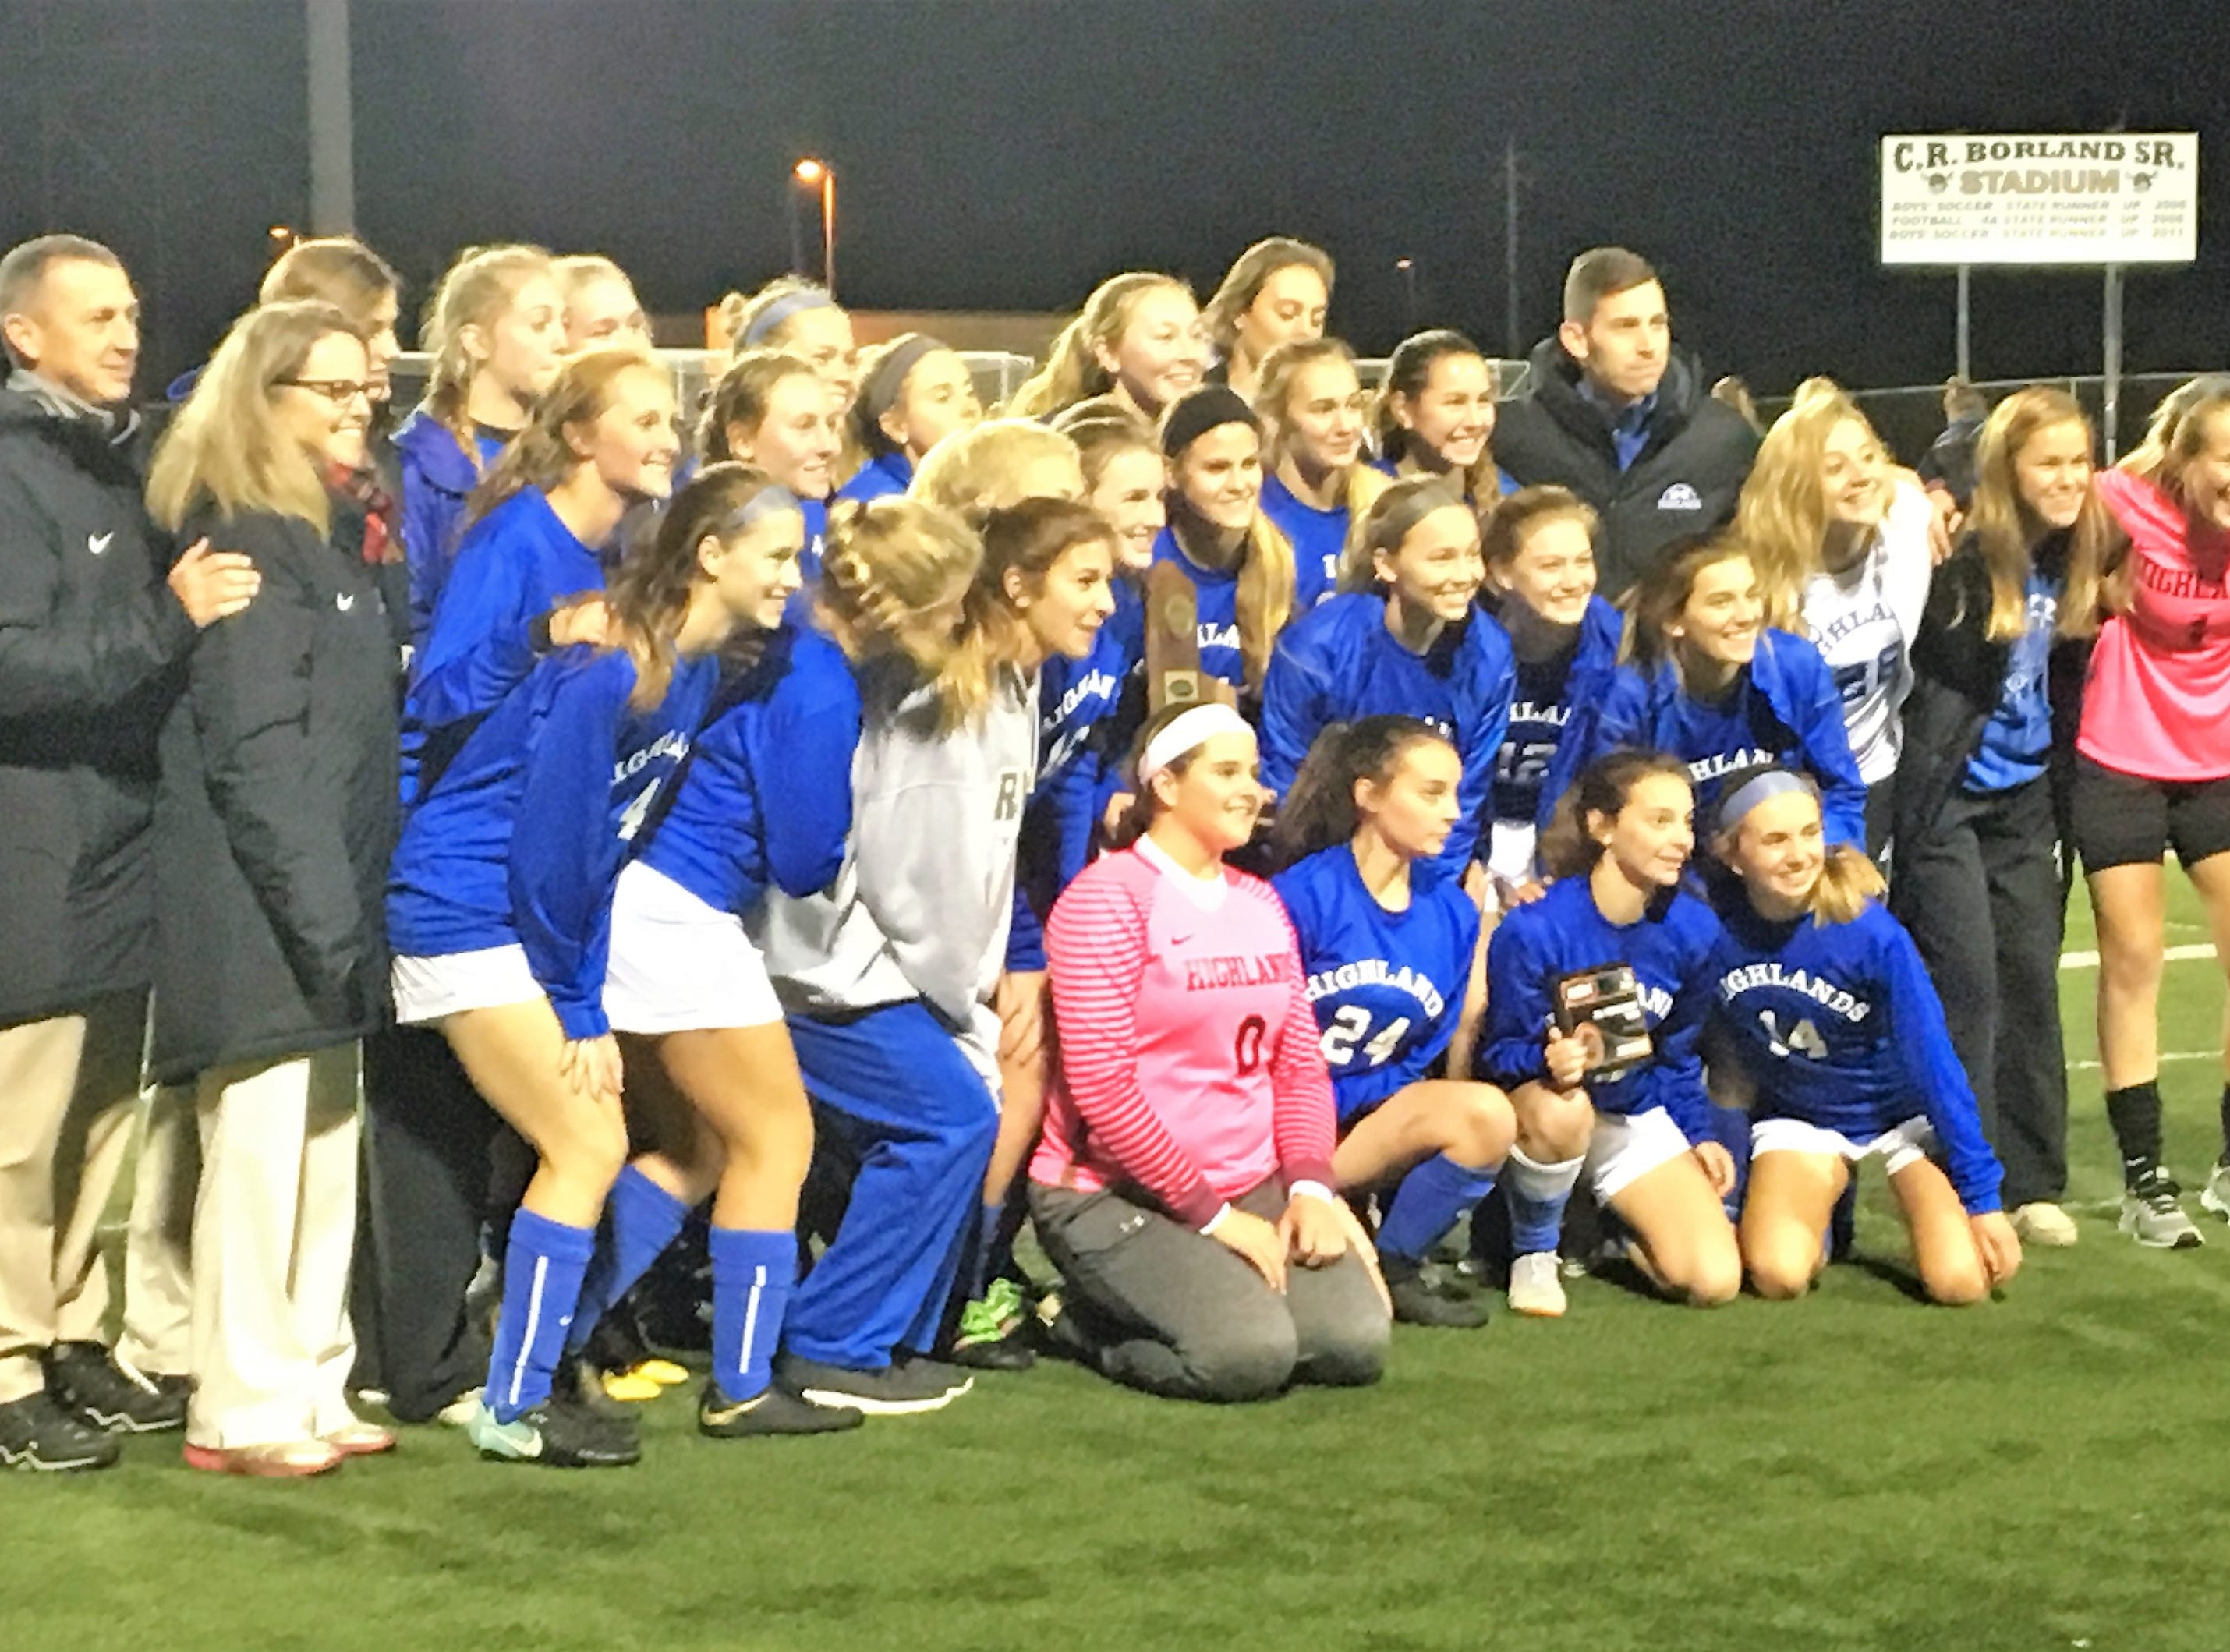 Highlands Bluebirds celebrate with their regional championship trophy during Highlands' 1-0 win over Notre Dame in the 9th Region girls soccer championship game Oct. 18, 2018, at Ryle High School, Union, Ky.